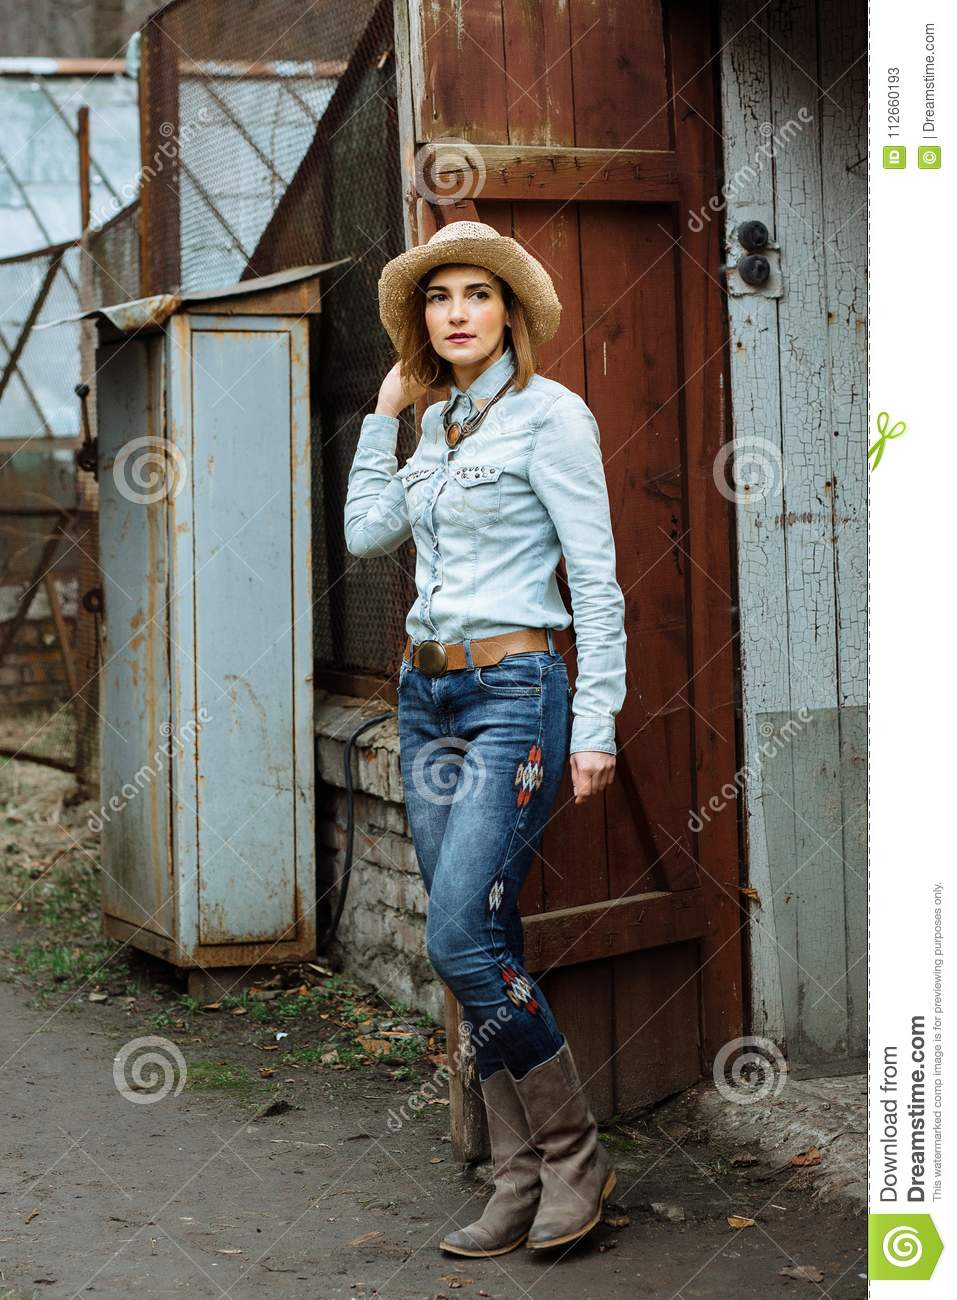 How to cowboy a wear boots new photo